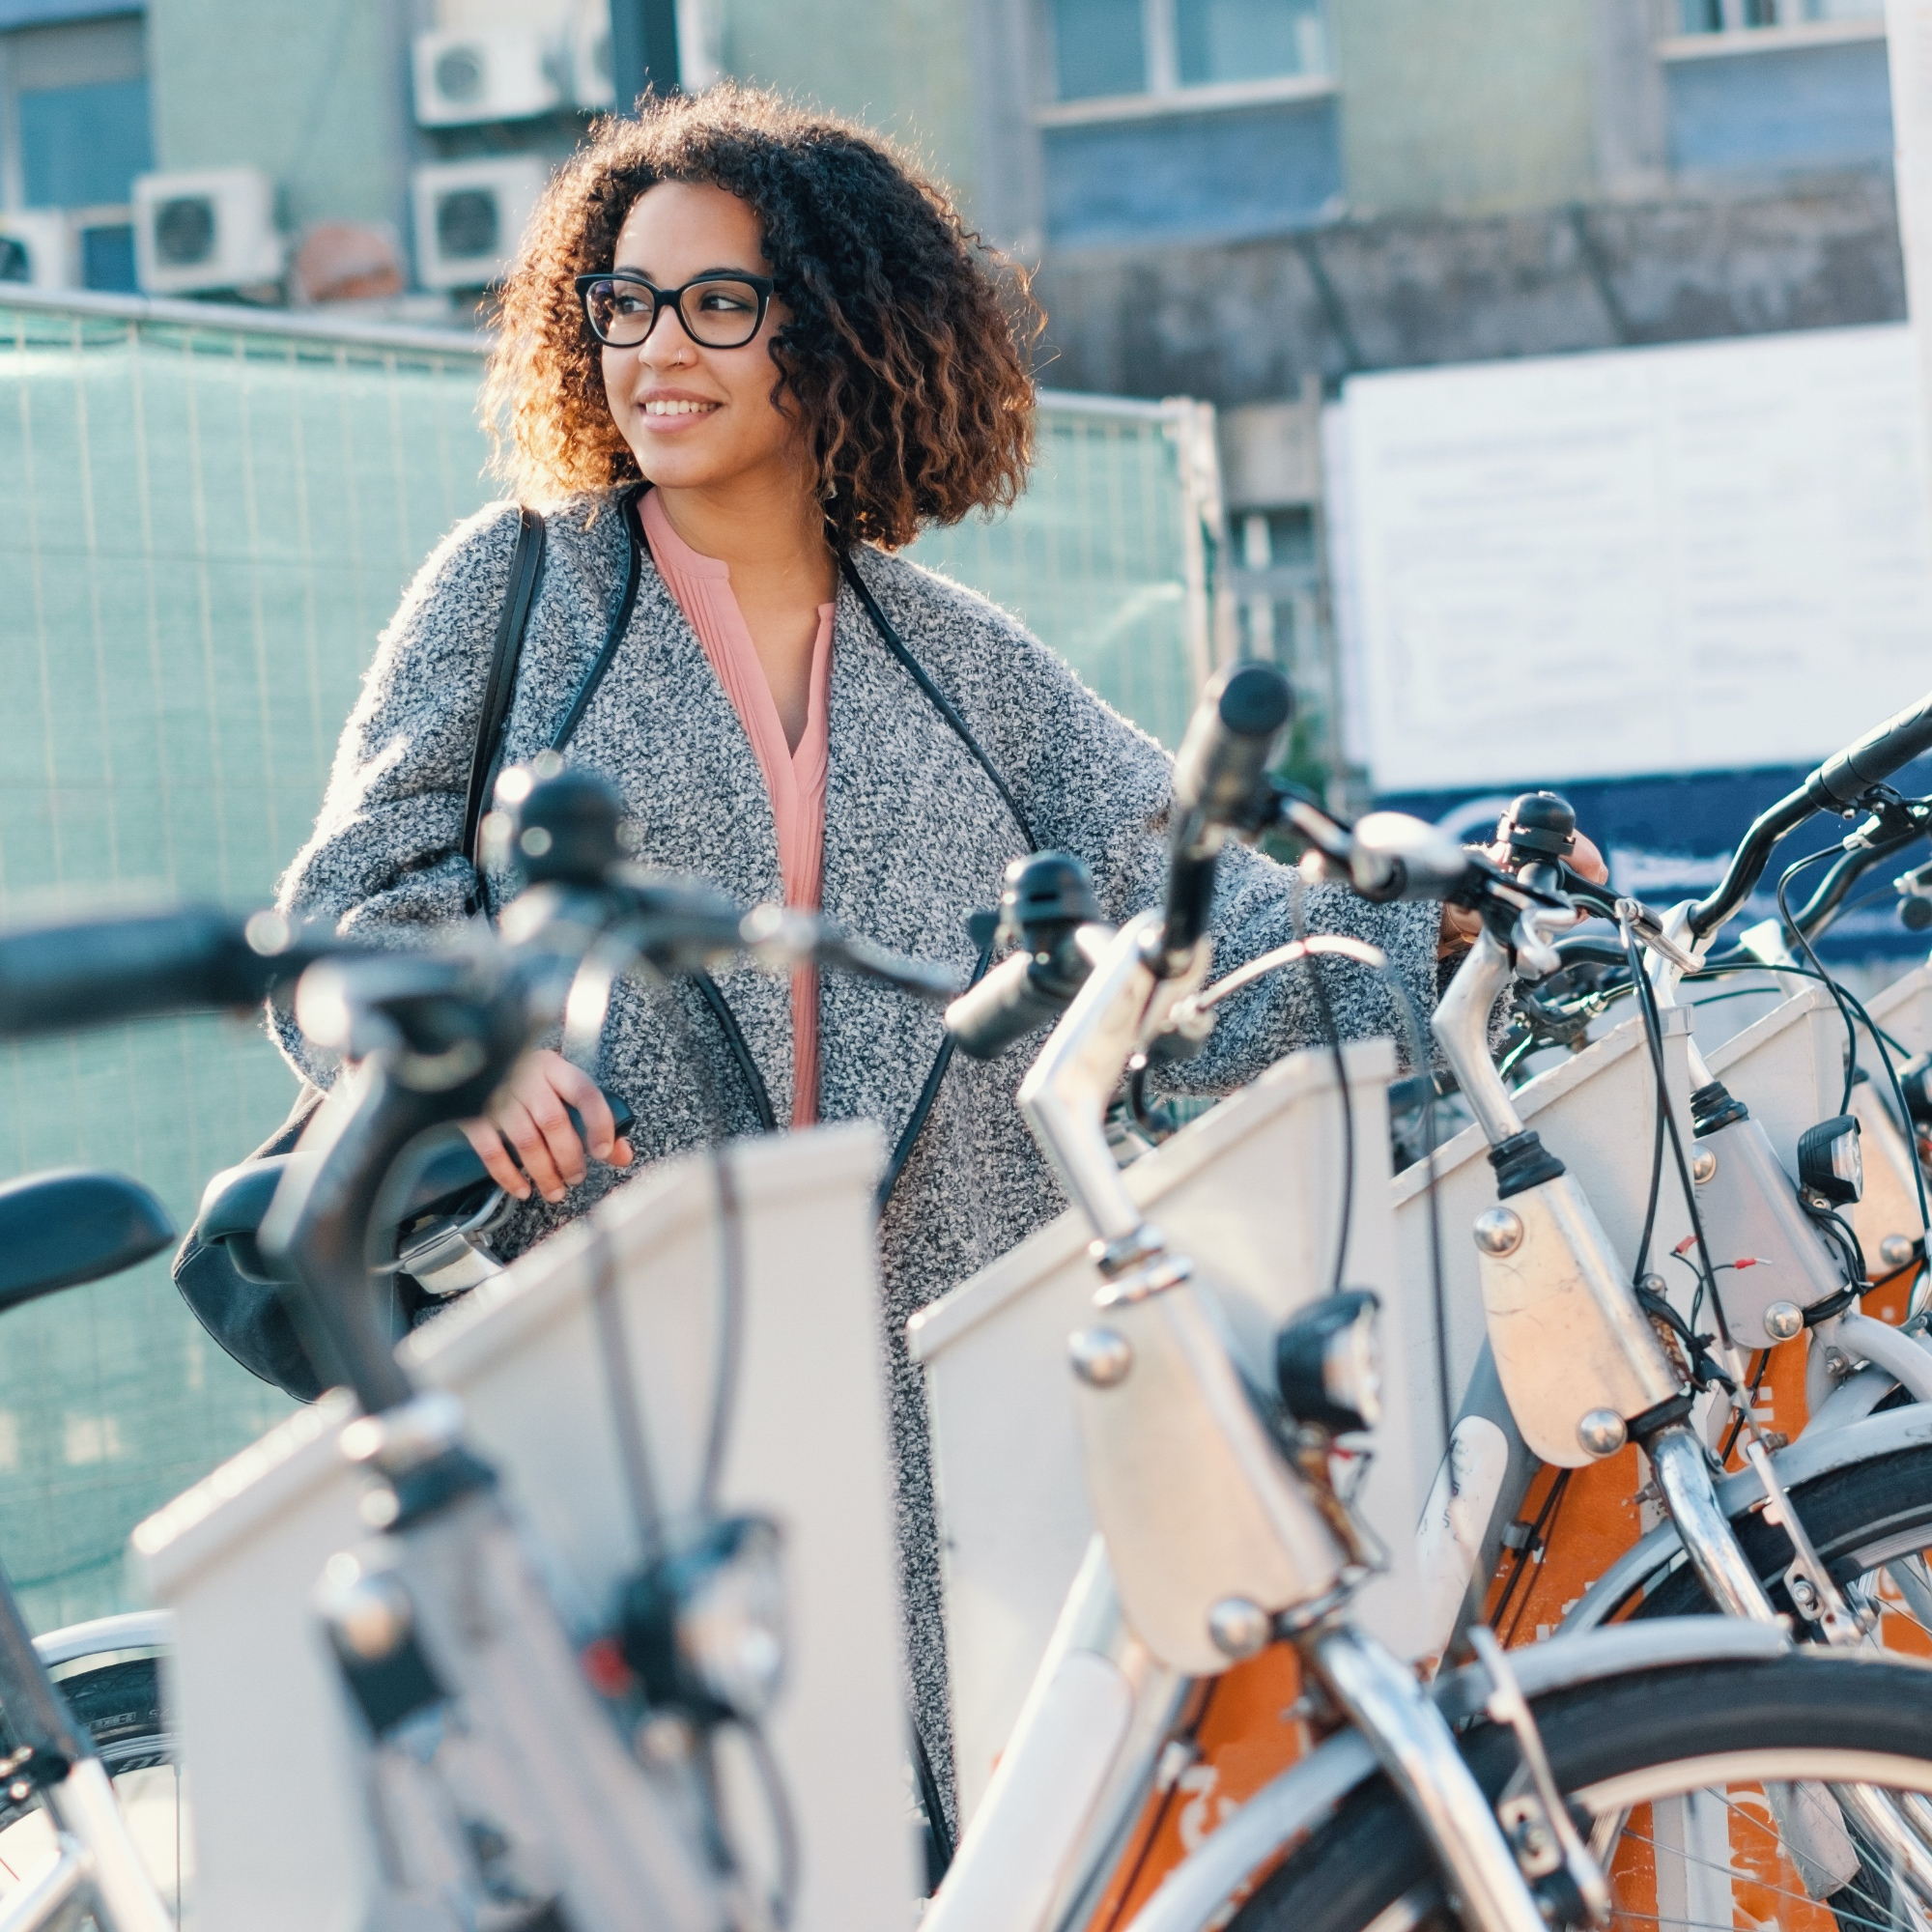 Young woman in glasses standing by a line of sharable bikes.